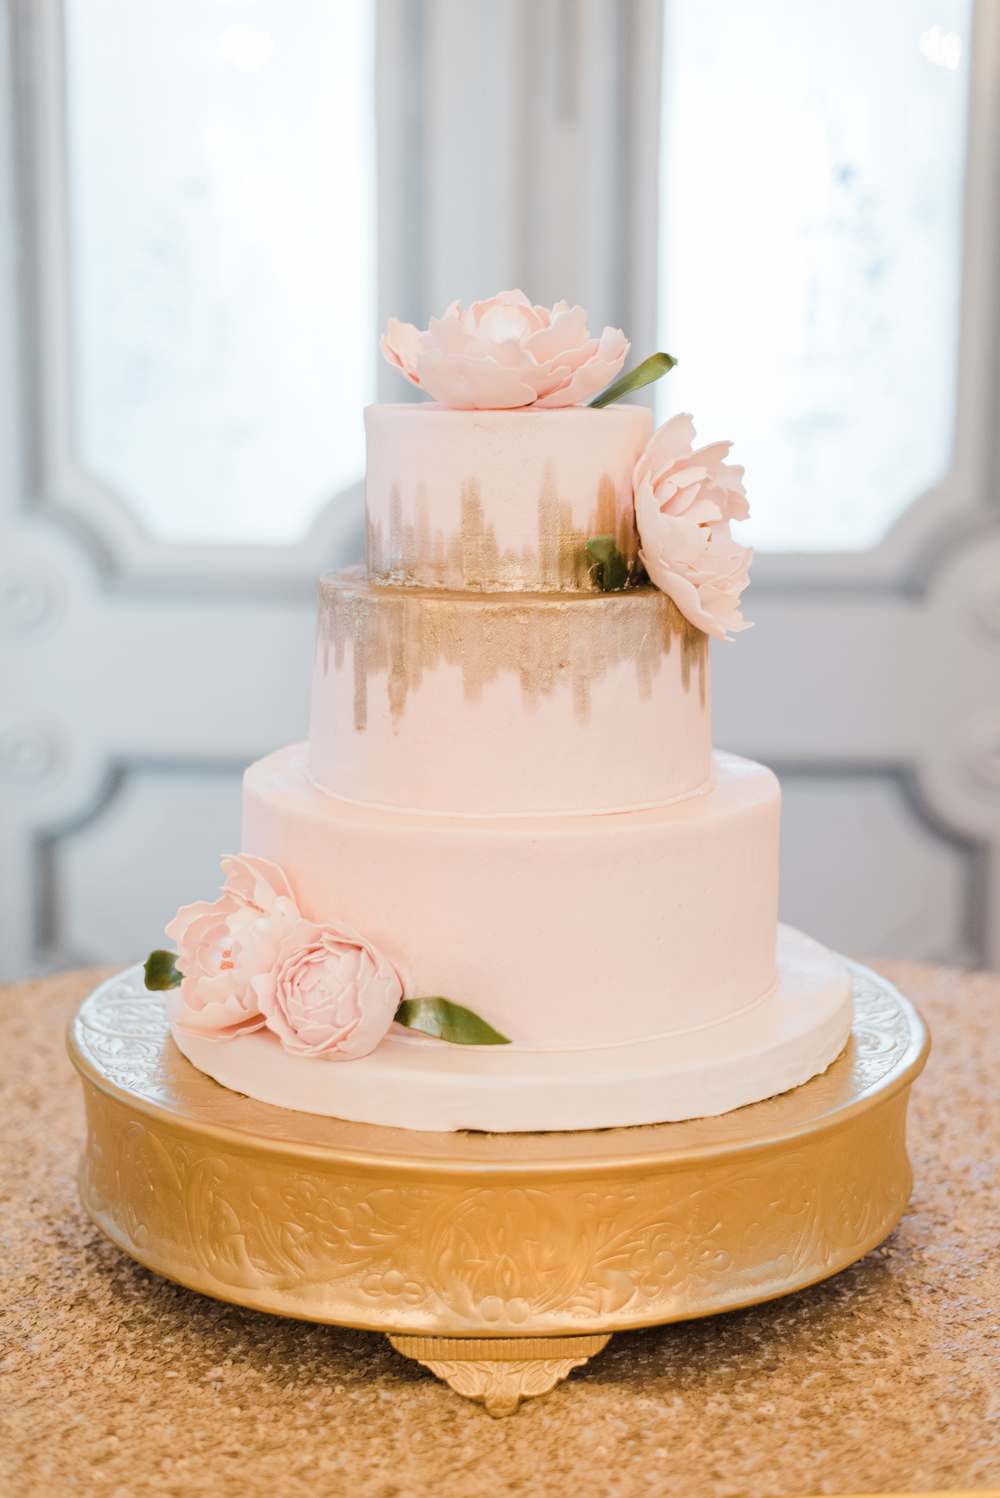 Pink Cake  | Edible Art Bakery of Raleigh